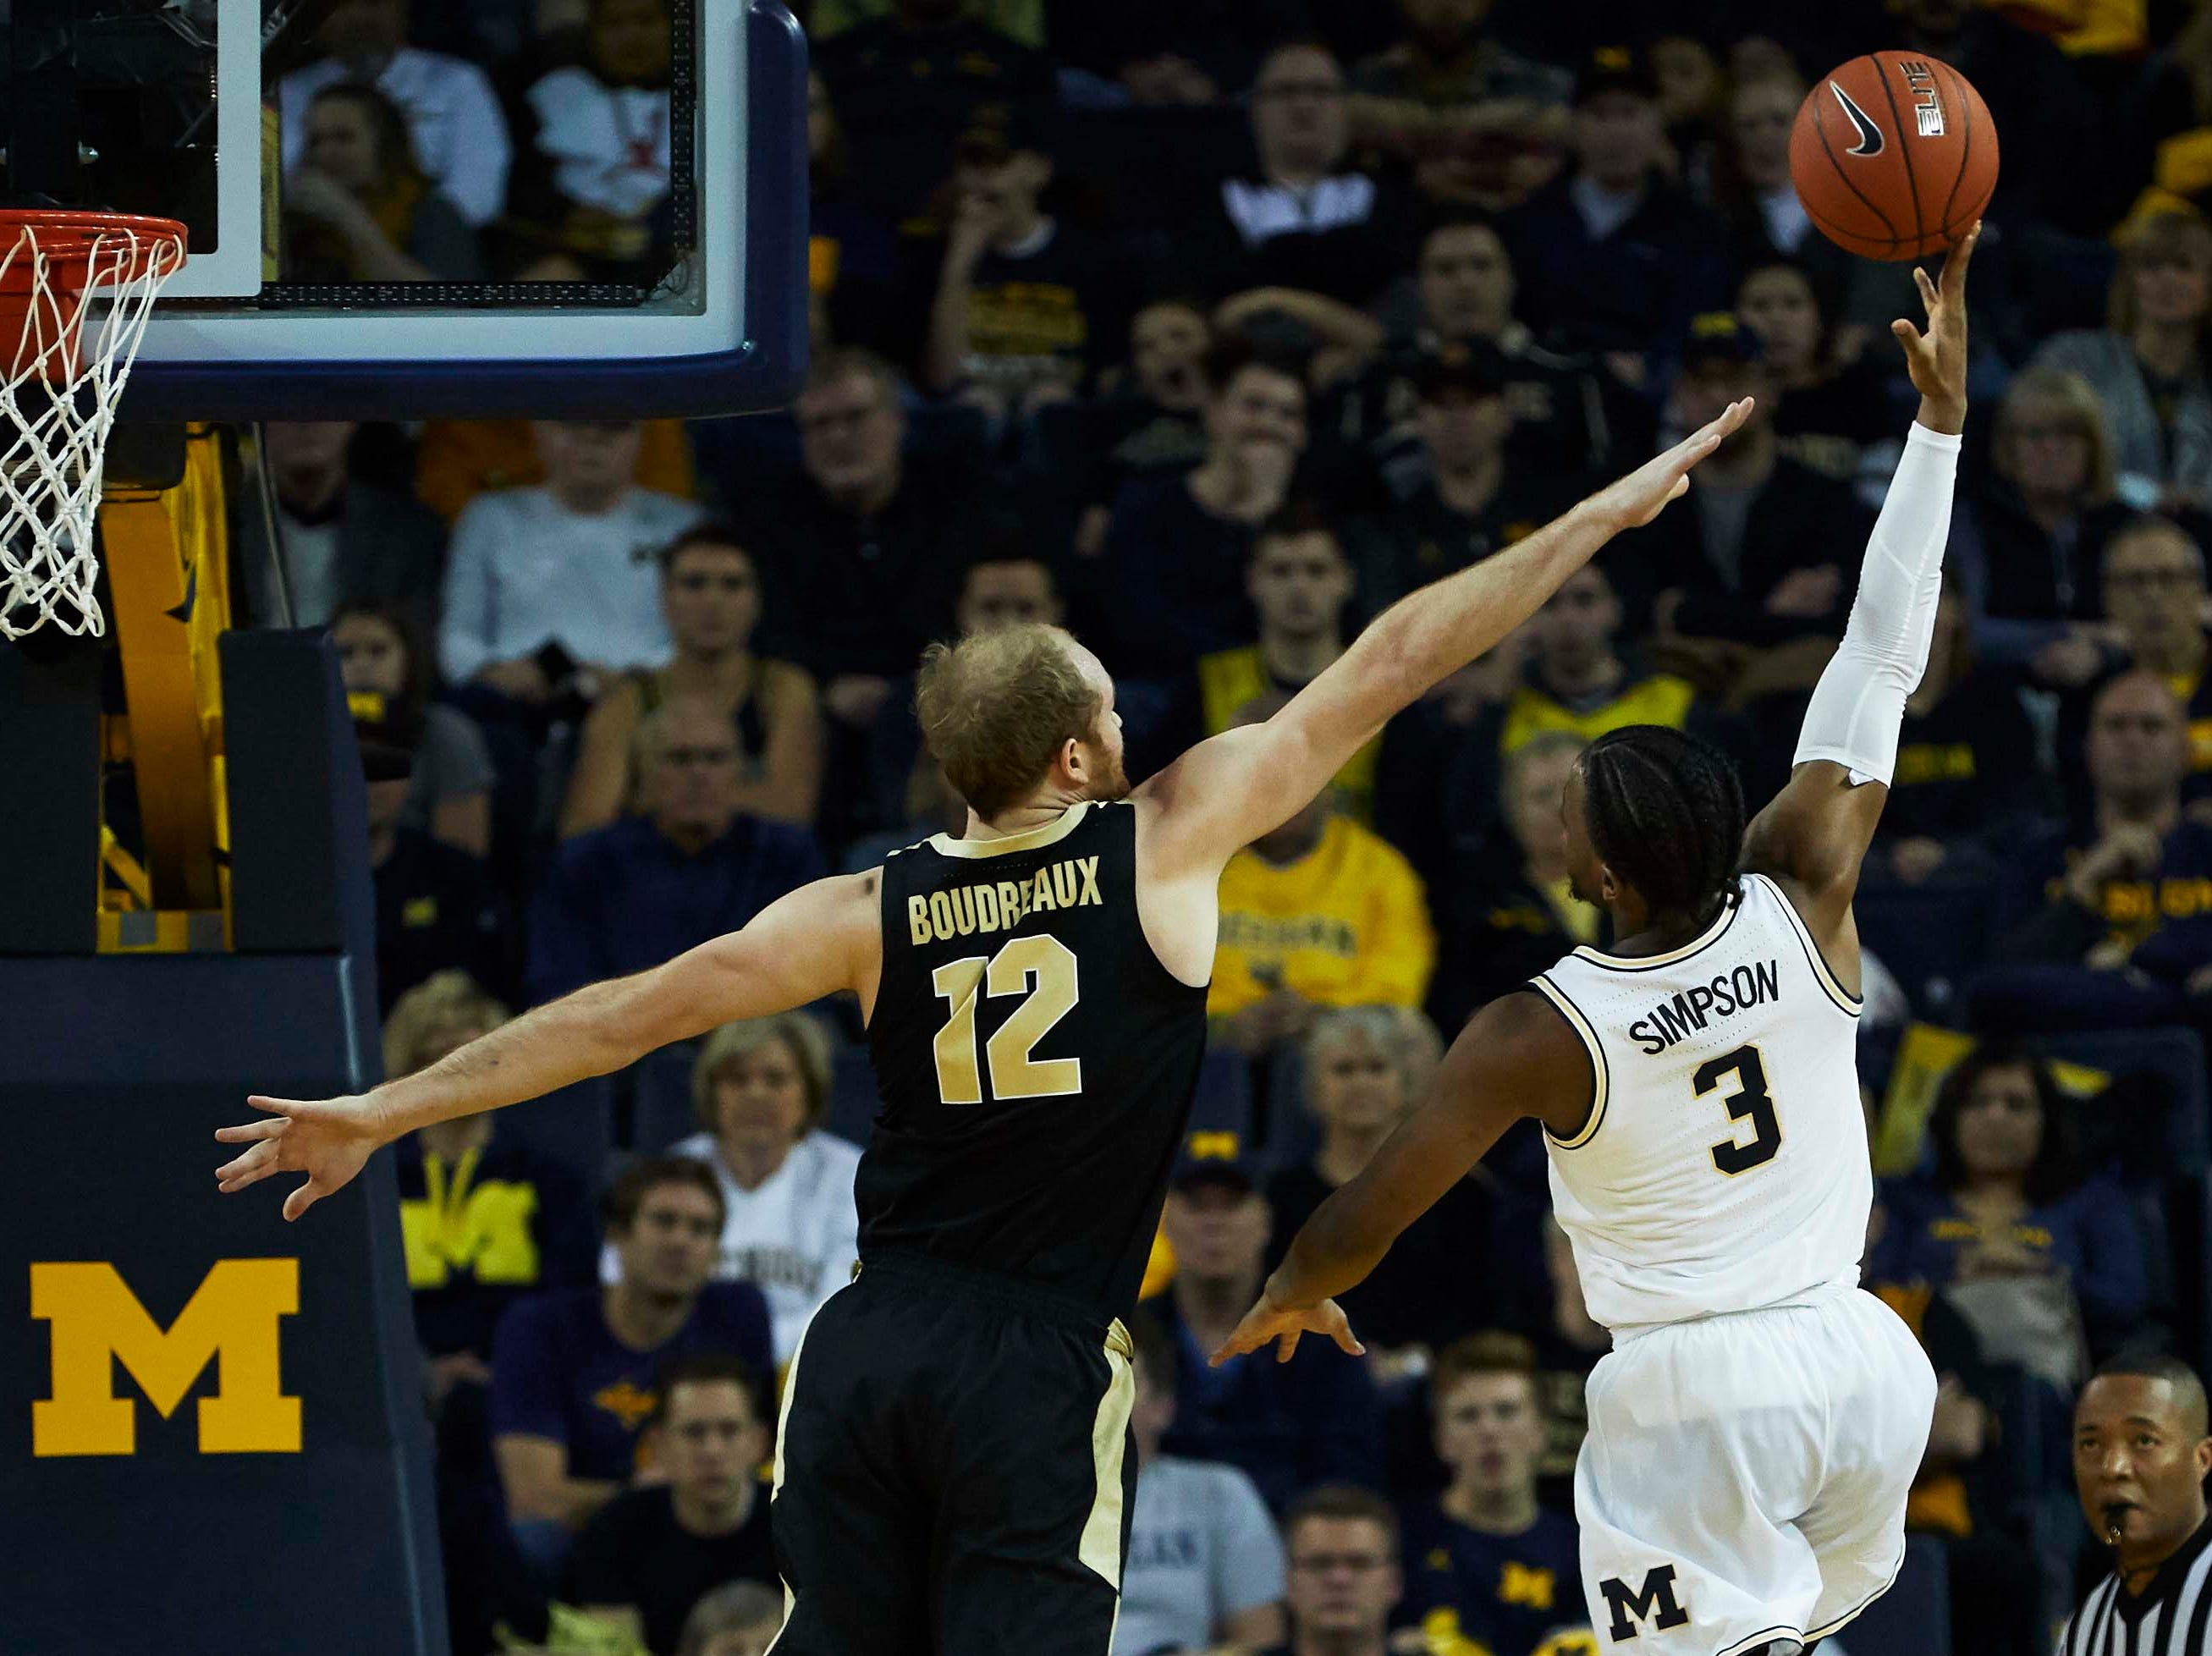 Dec 1, 2018; Ann Arbor, MI, USA; Michigan Wolverines guard Zavier Simpson (3) shoots on Purdue Boilermakers forward Evan Boudreaux (12) in the second half at Crisler Center. Mandatory Credit: Rick Osentoski-USA TODAY Sports